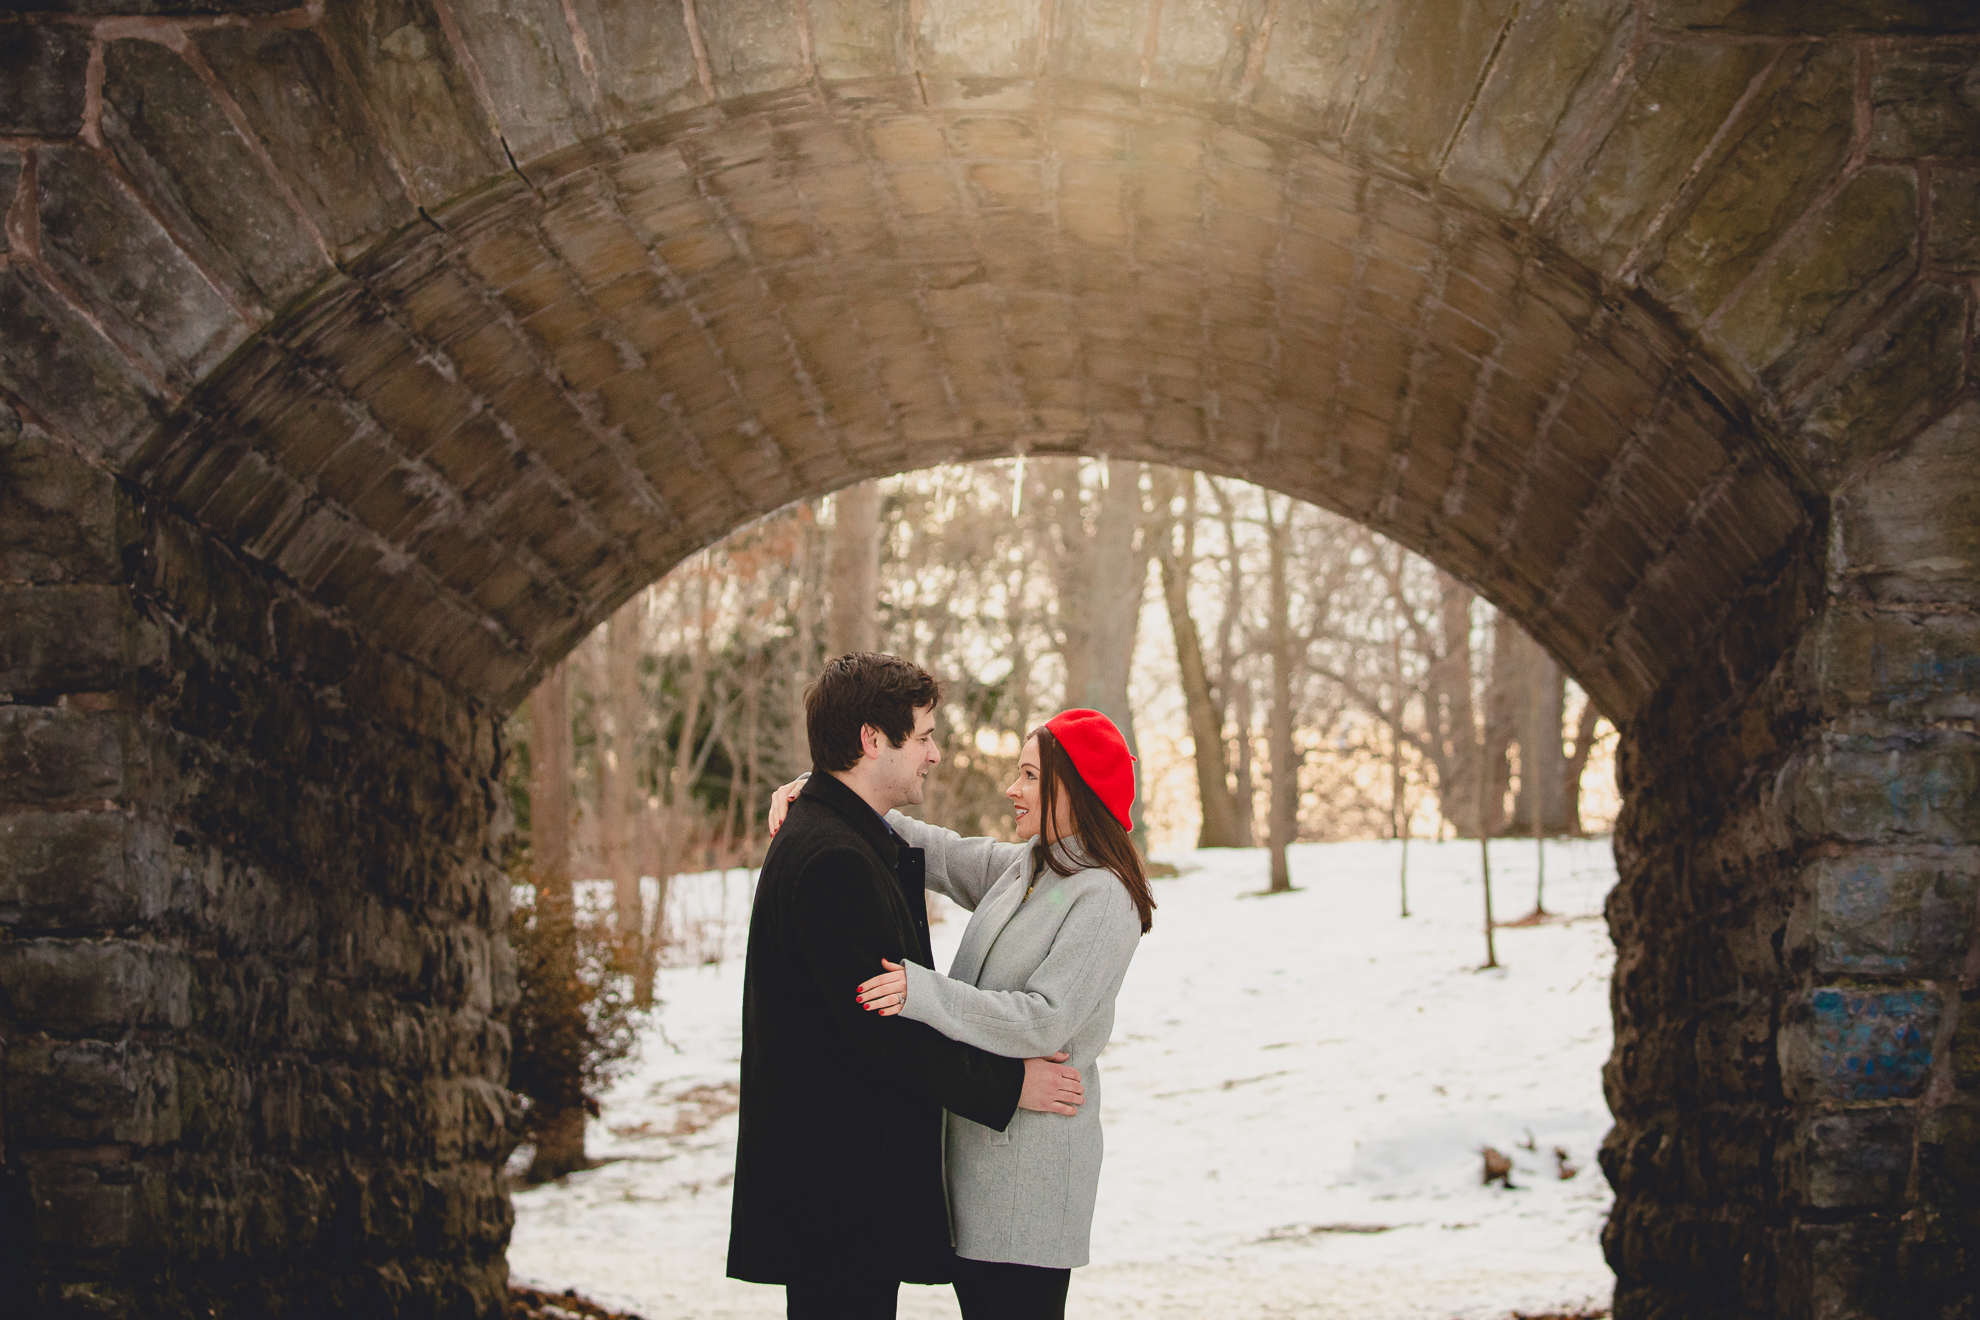 bride and groom smile at one another in front of the Ivy Bridge in Delaware Park during their wedding engagement photography session in Buffalo, NY